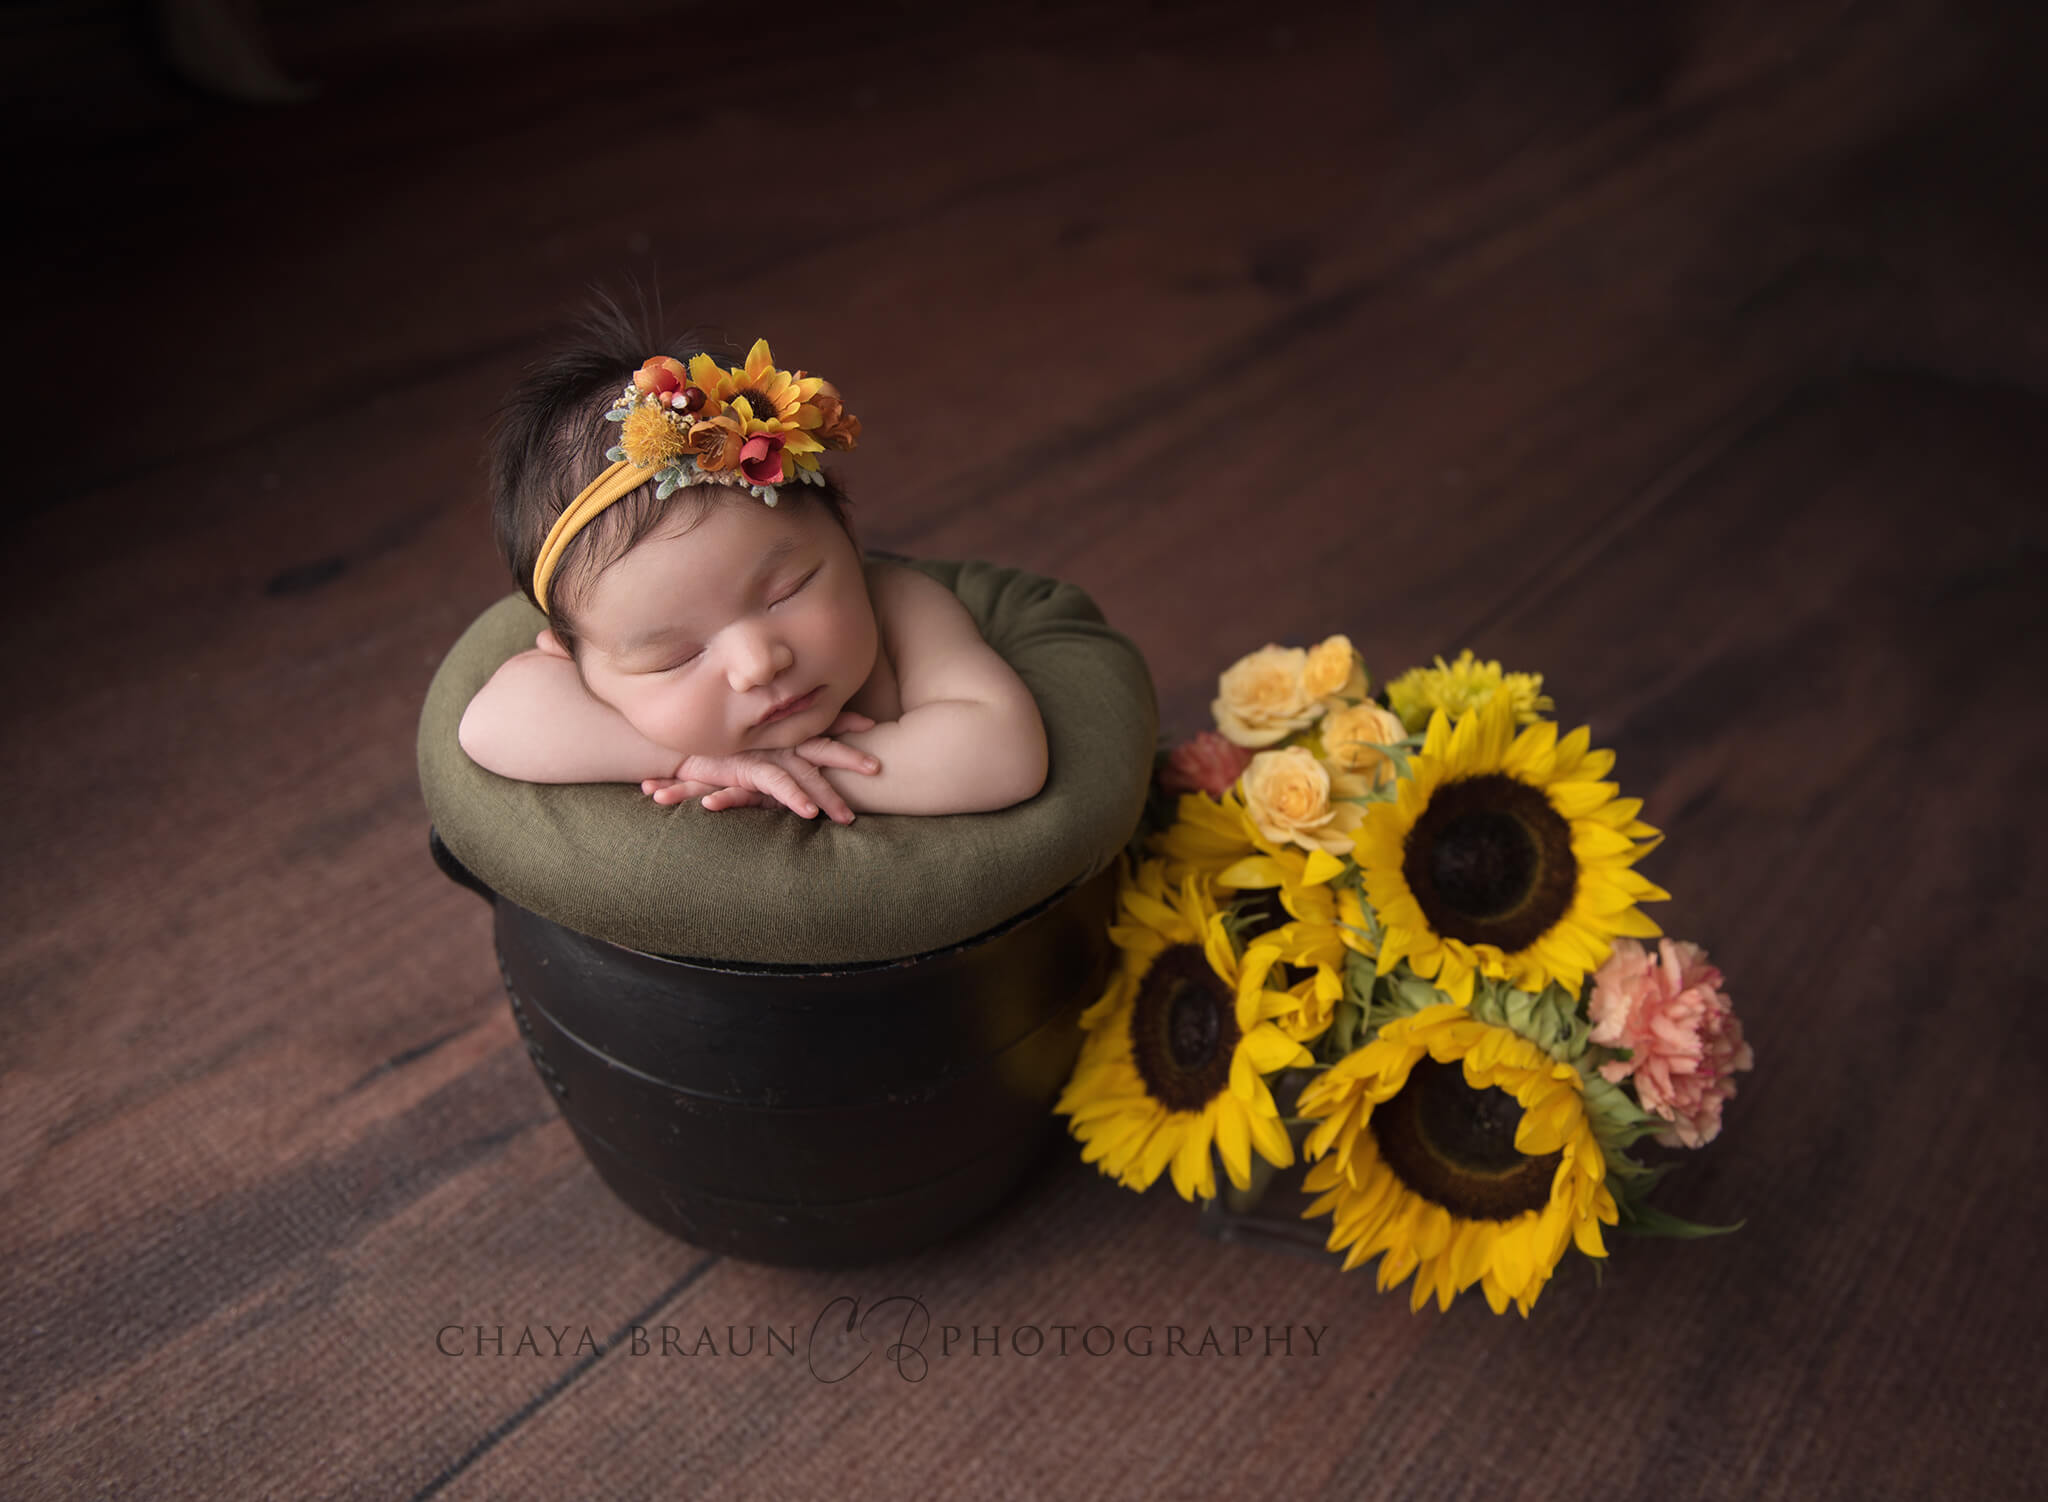 newborn baby with sunflowers